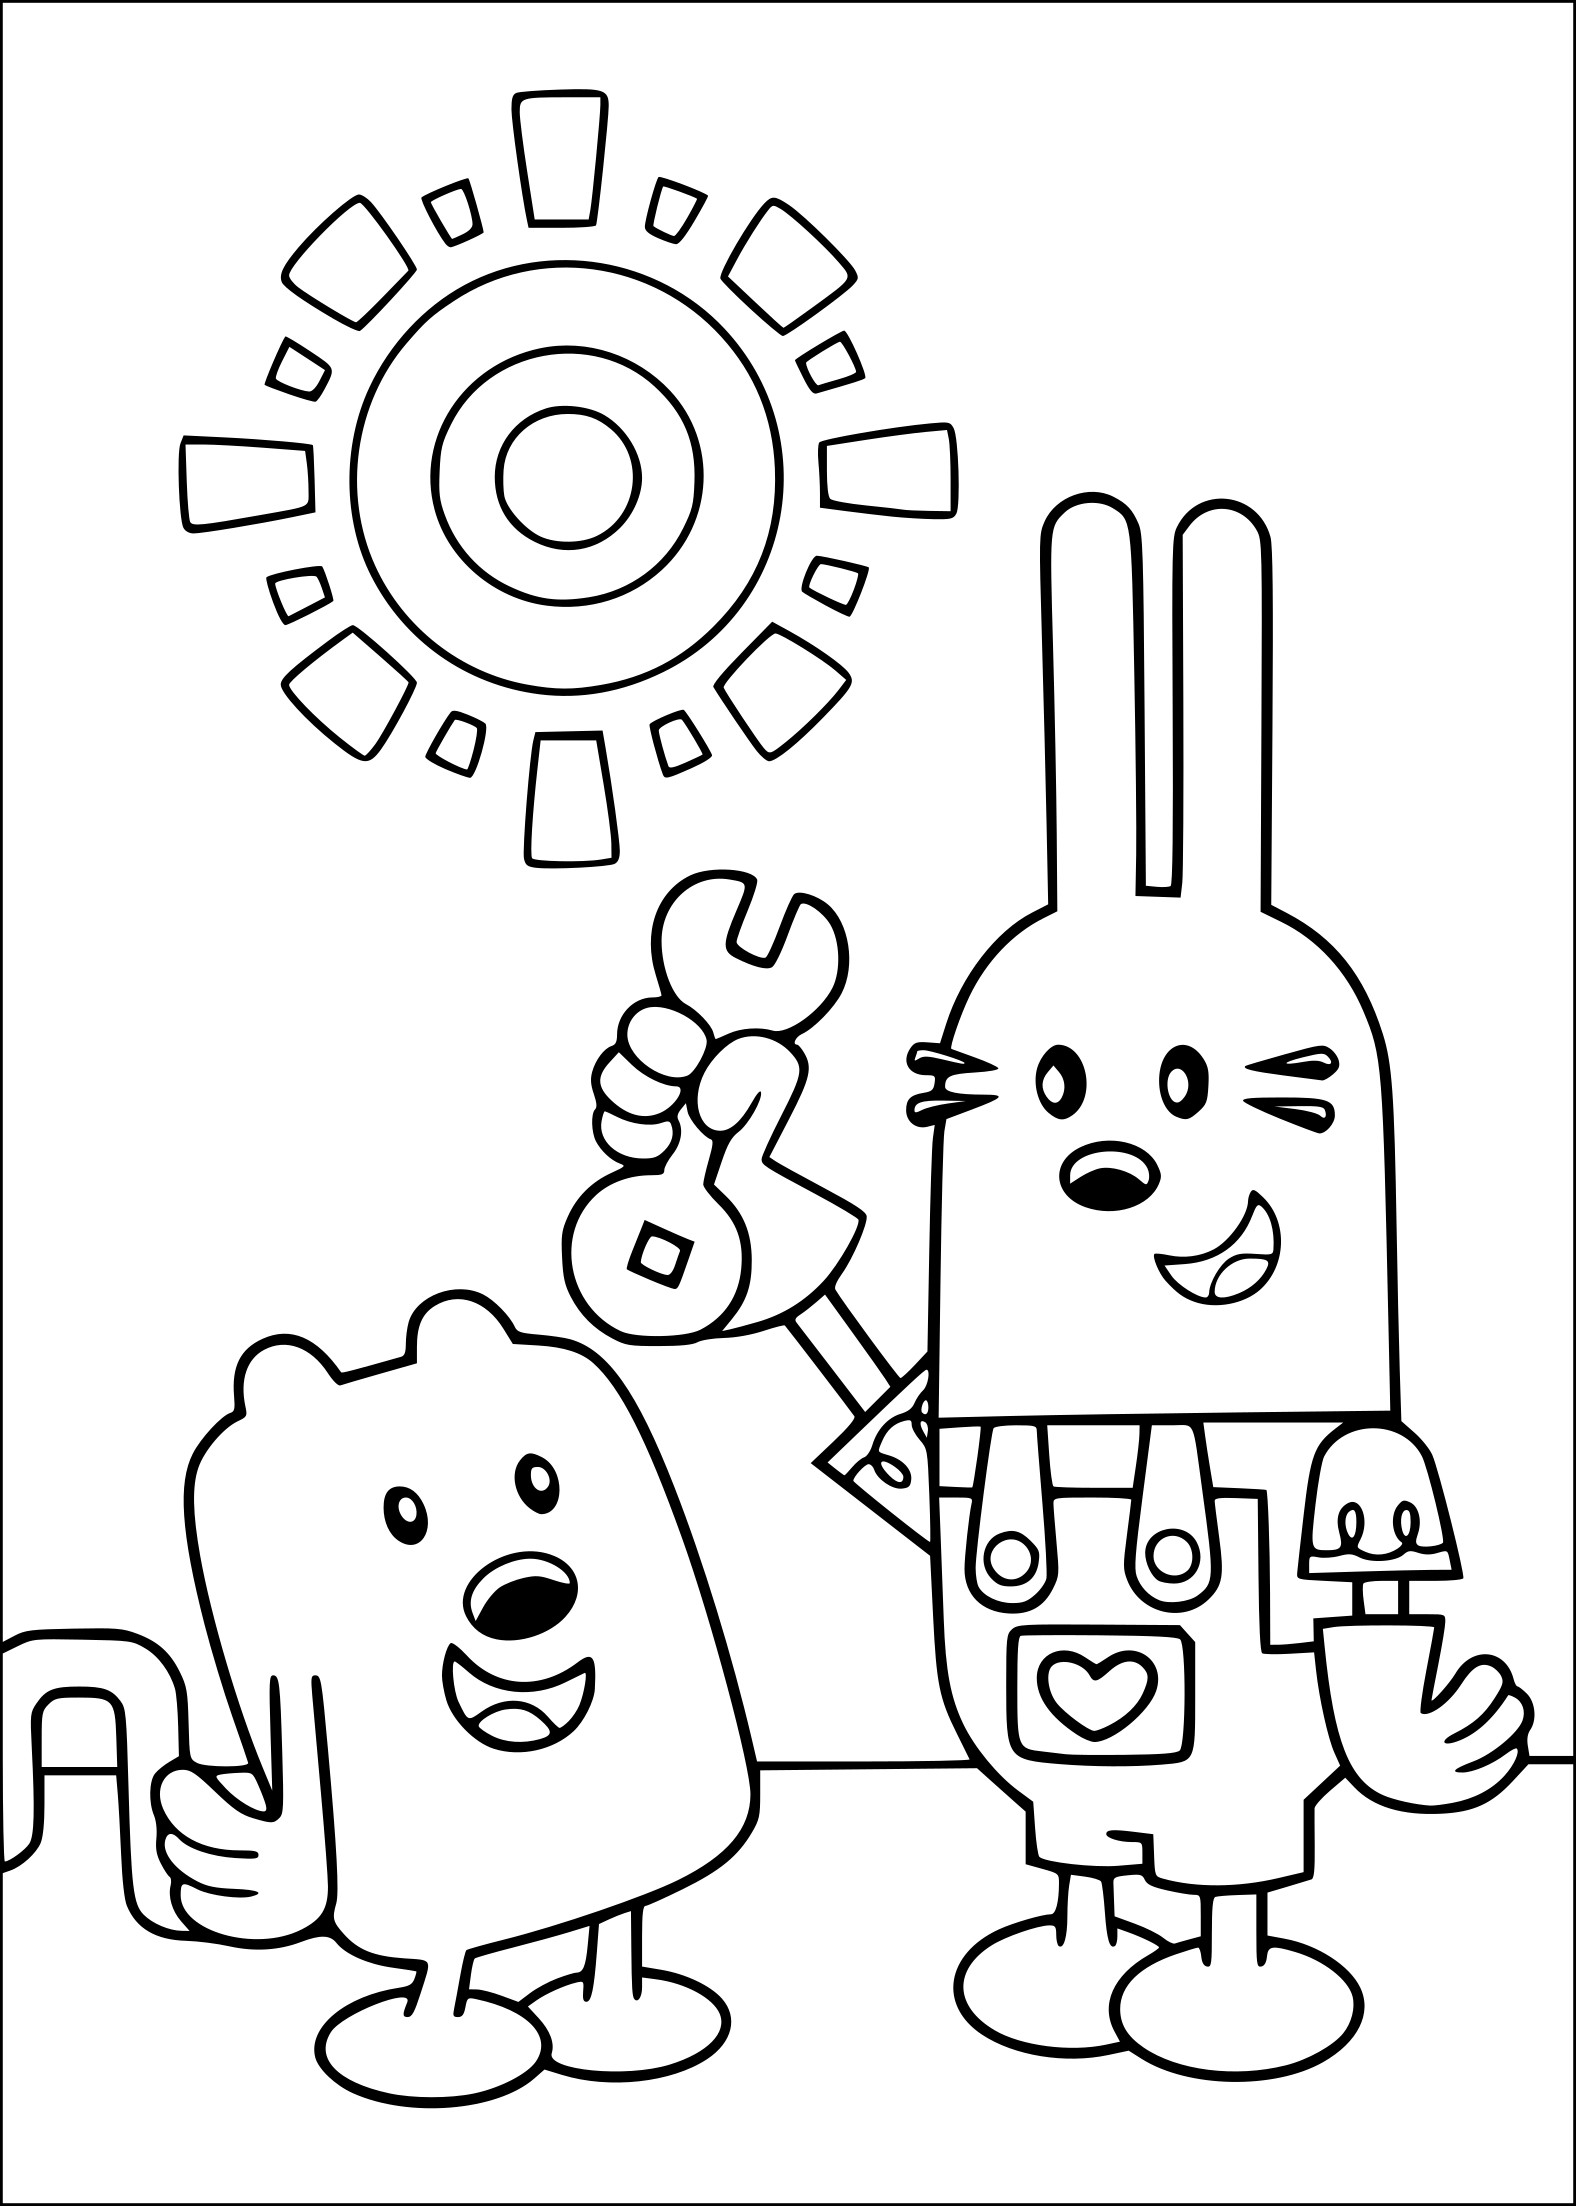 Coloriage Wow! Wow! Wubbzy!